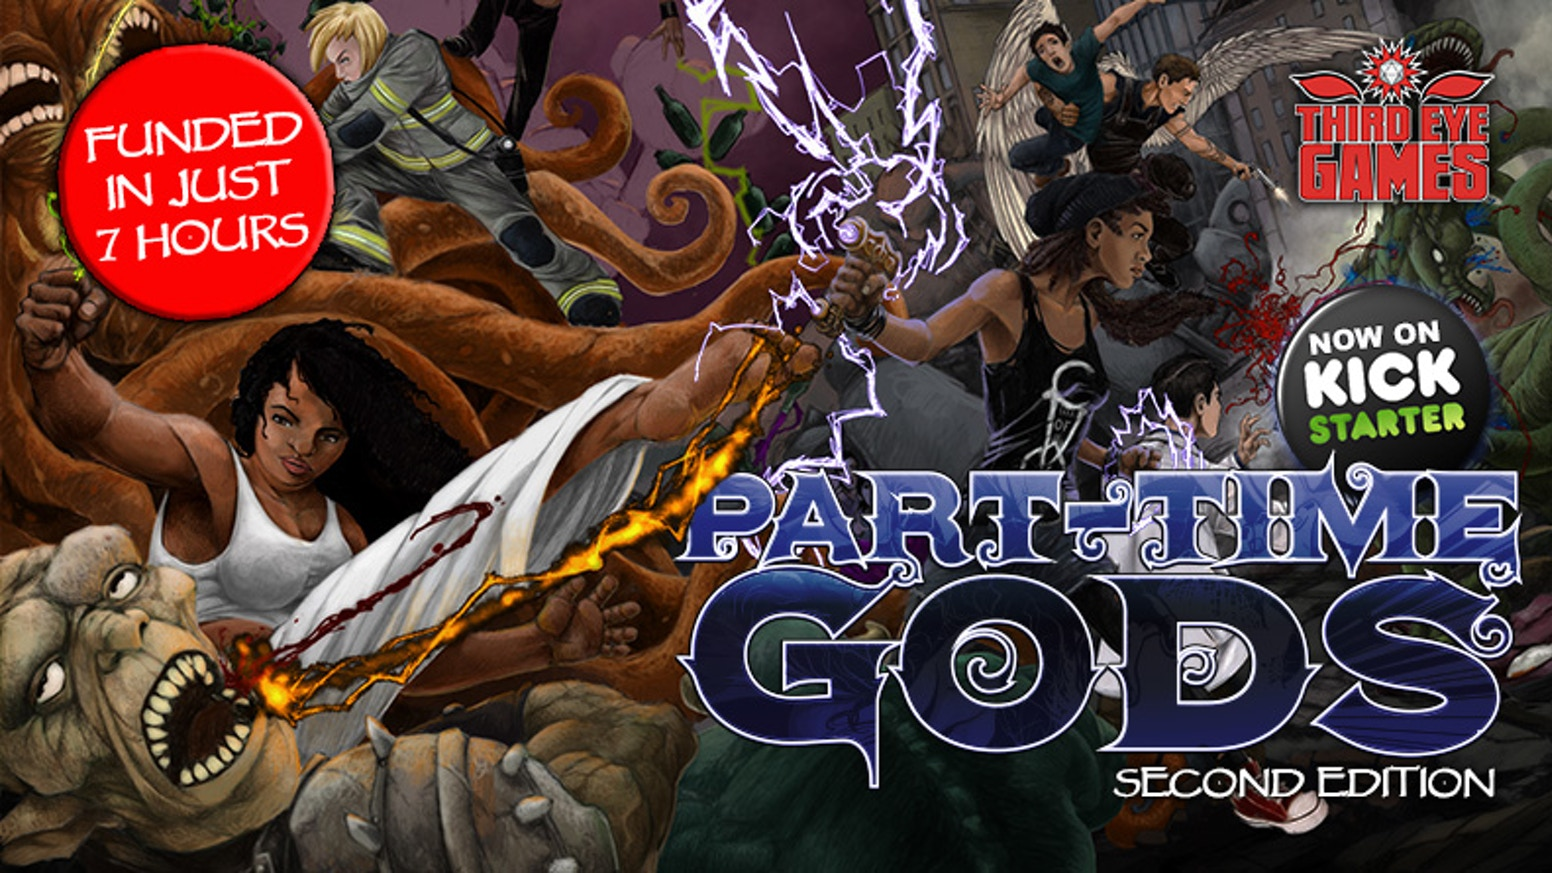 A new edition of Part-Time Gods that expands and enhances the core experience while adding tons of new material.